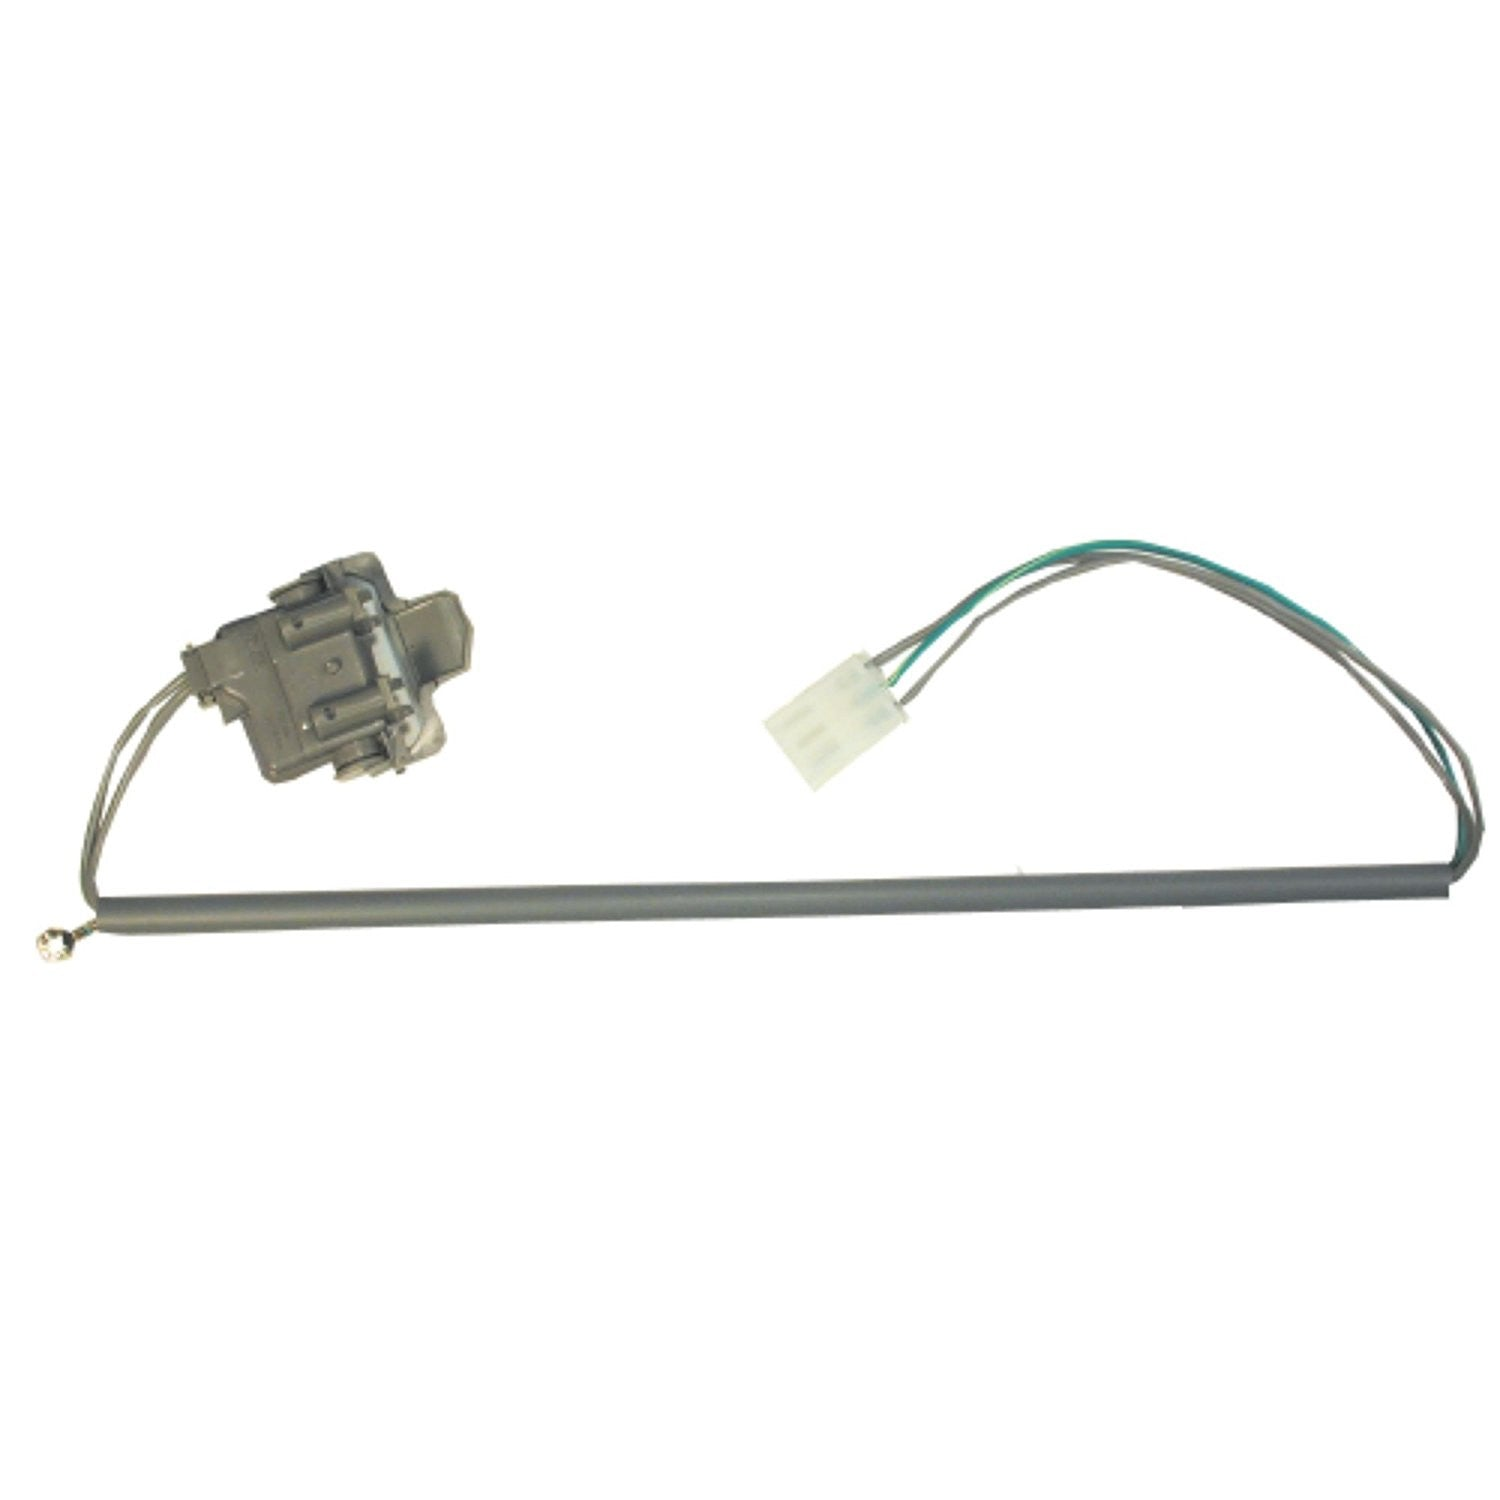 Whirlpool LLT8233AW1 Lid Switch Assembly Replacement